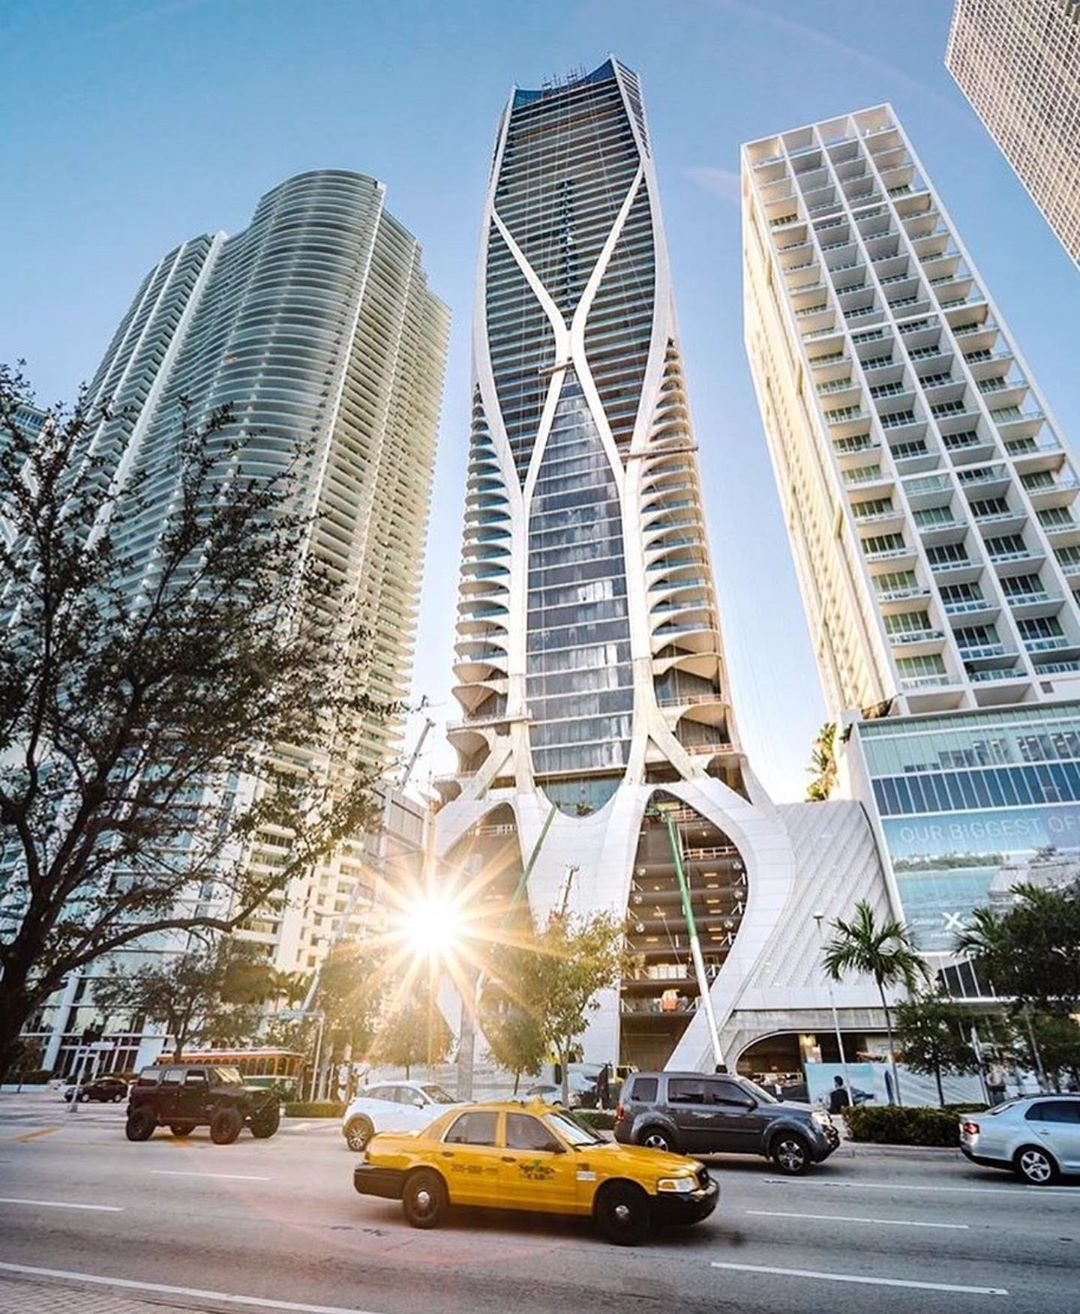 Zaha Hadid Architects On Instagram Onethousandmuseum Residential Tower In Miami Has Received Awards For Excellence In Two Categories From The Council On Tall